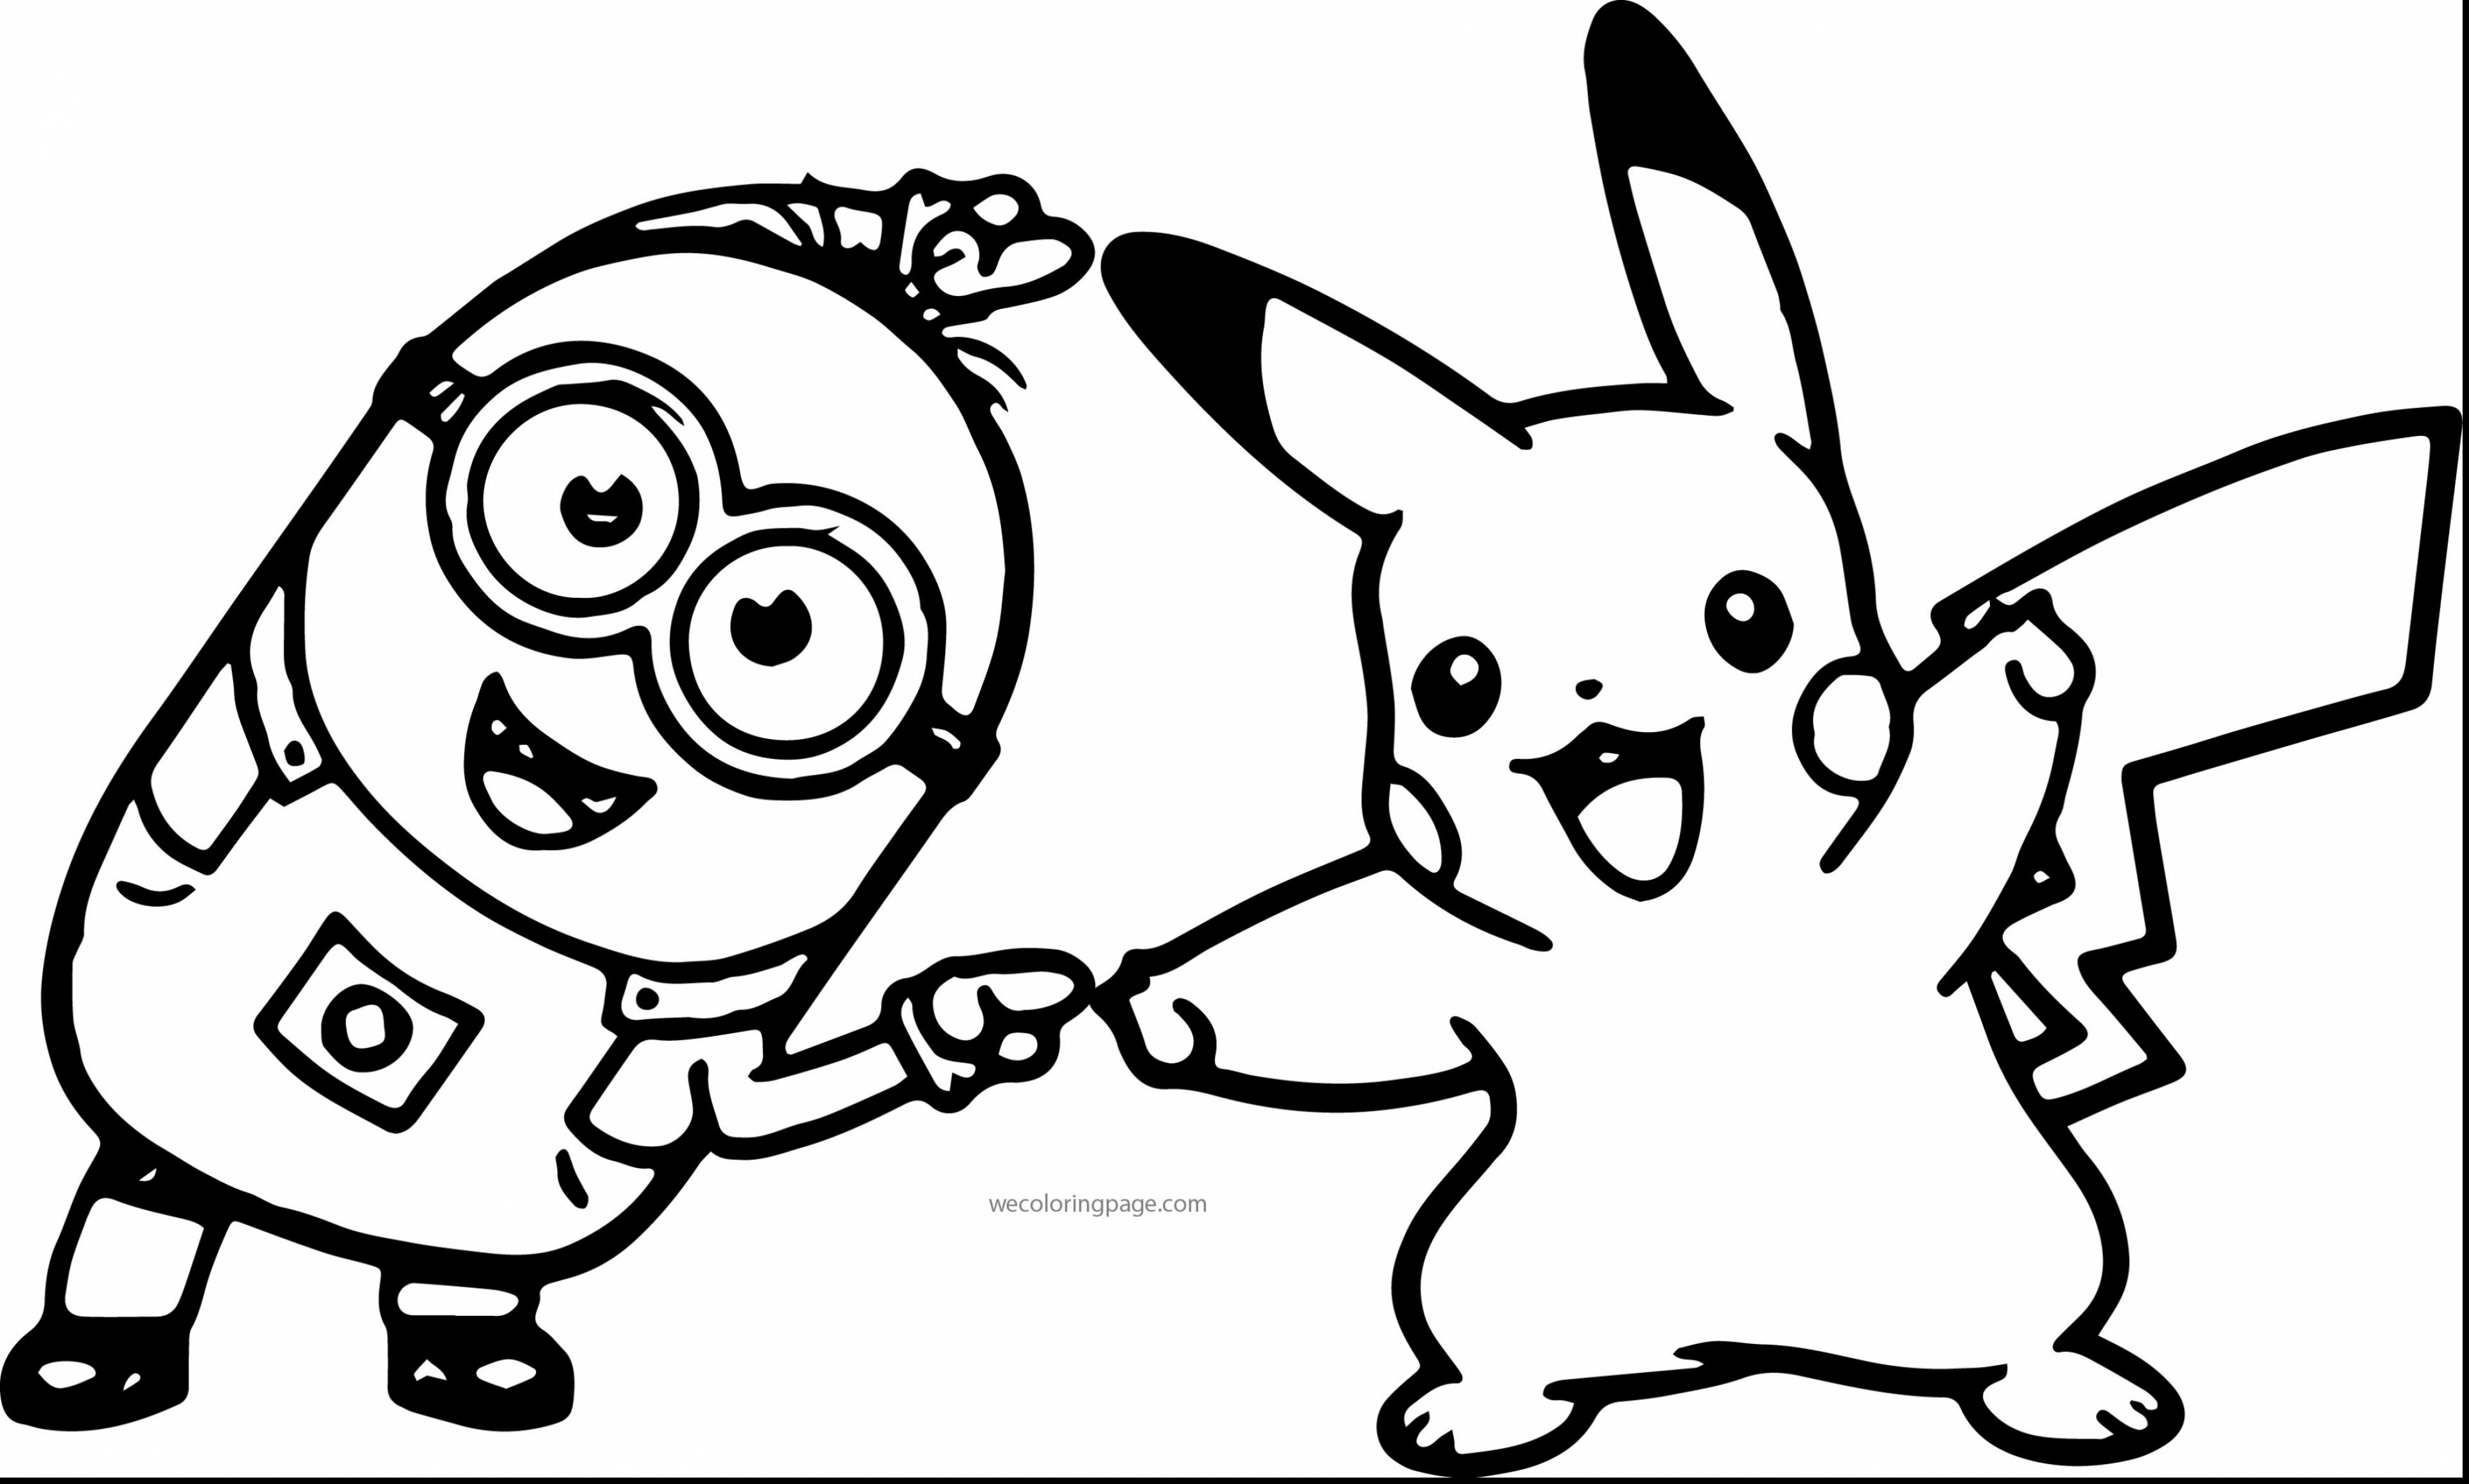 pikachu images for coloring download pikachu coloring pages images survival raidcom coloring for images pikachu